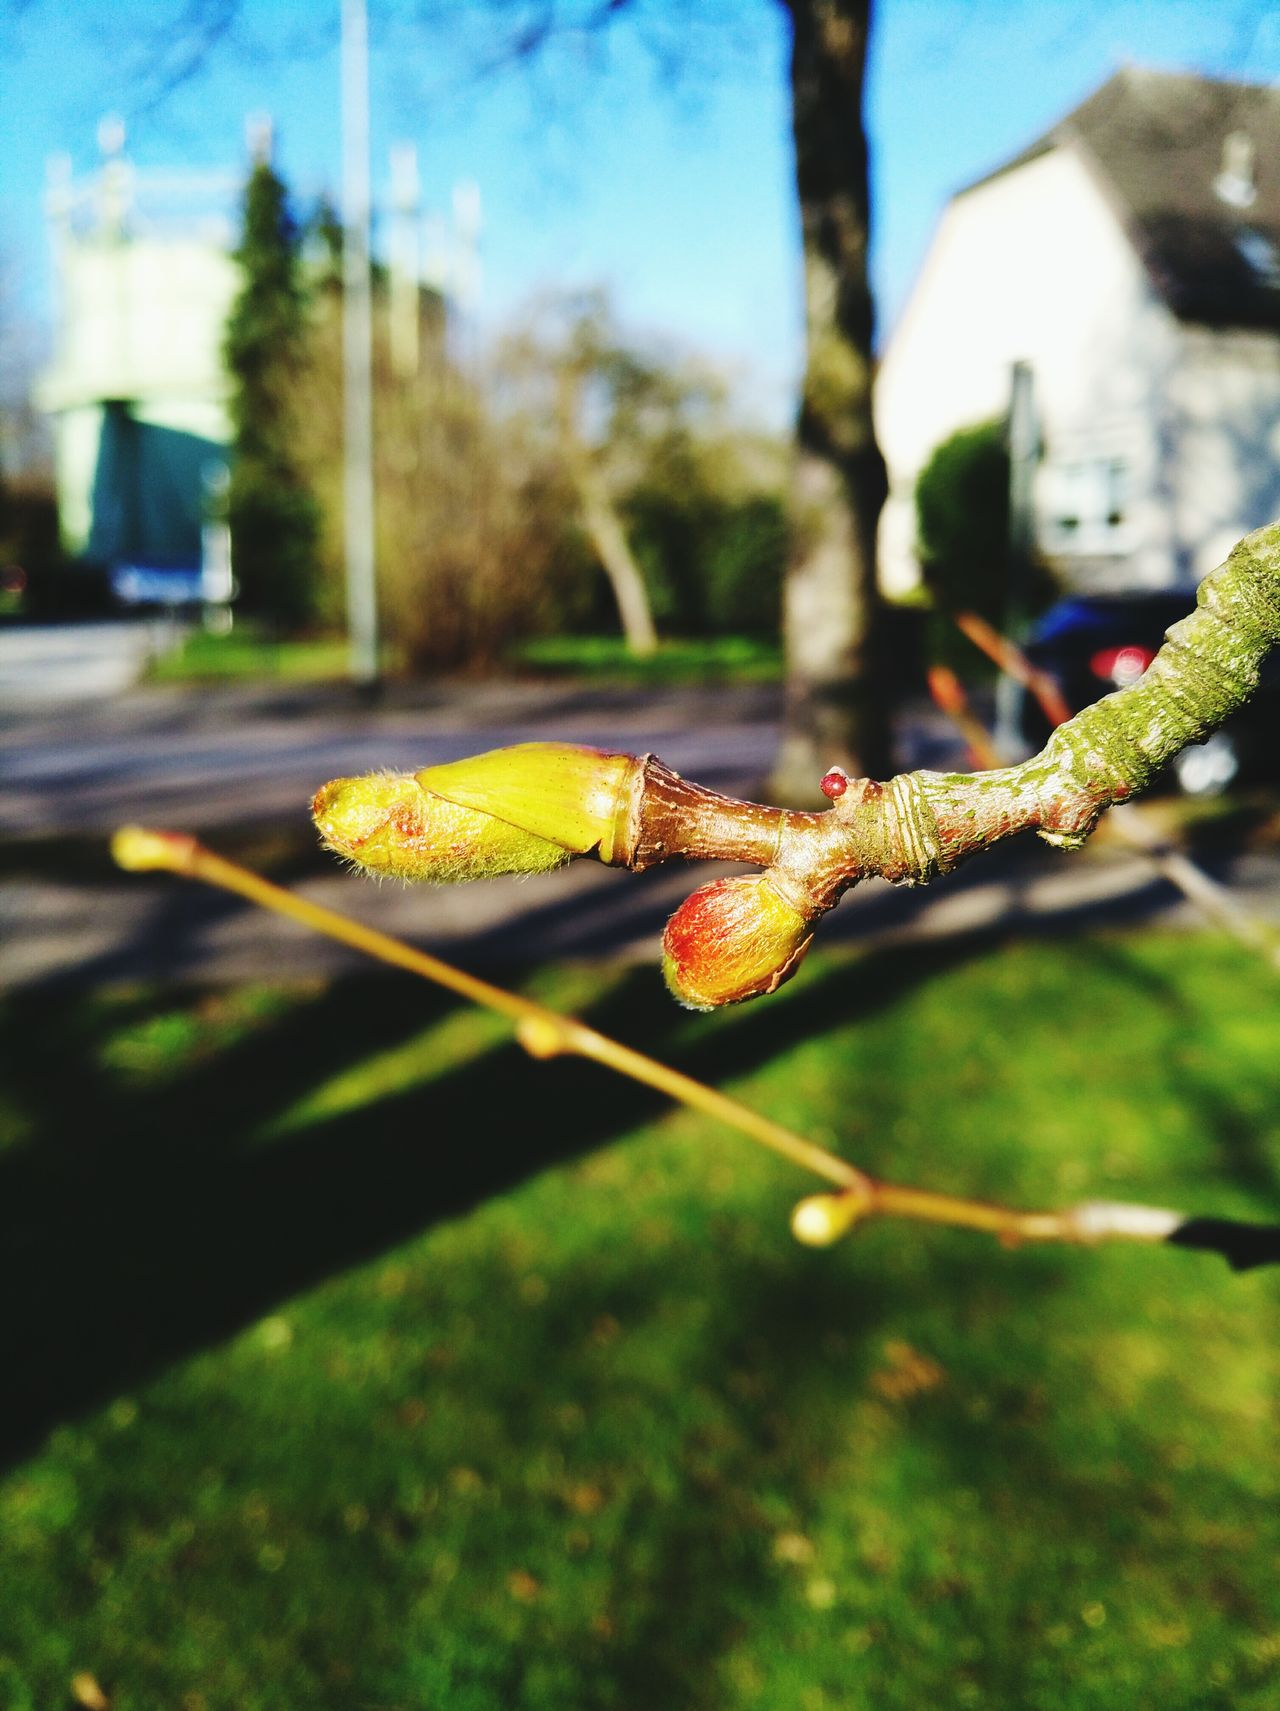 Spring Time We Are Photography, We Are EyeEm We Are Eyeem, We Are Photography Beauty In Nature Growth Tree Ways Of Life Spring Springtime Spring Into Spring Spring Has Arrived